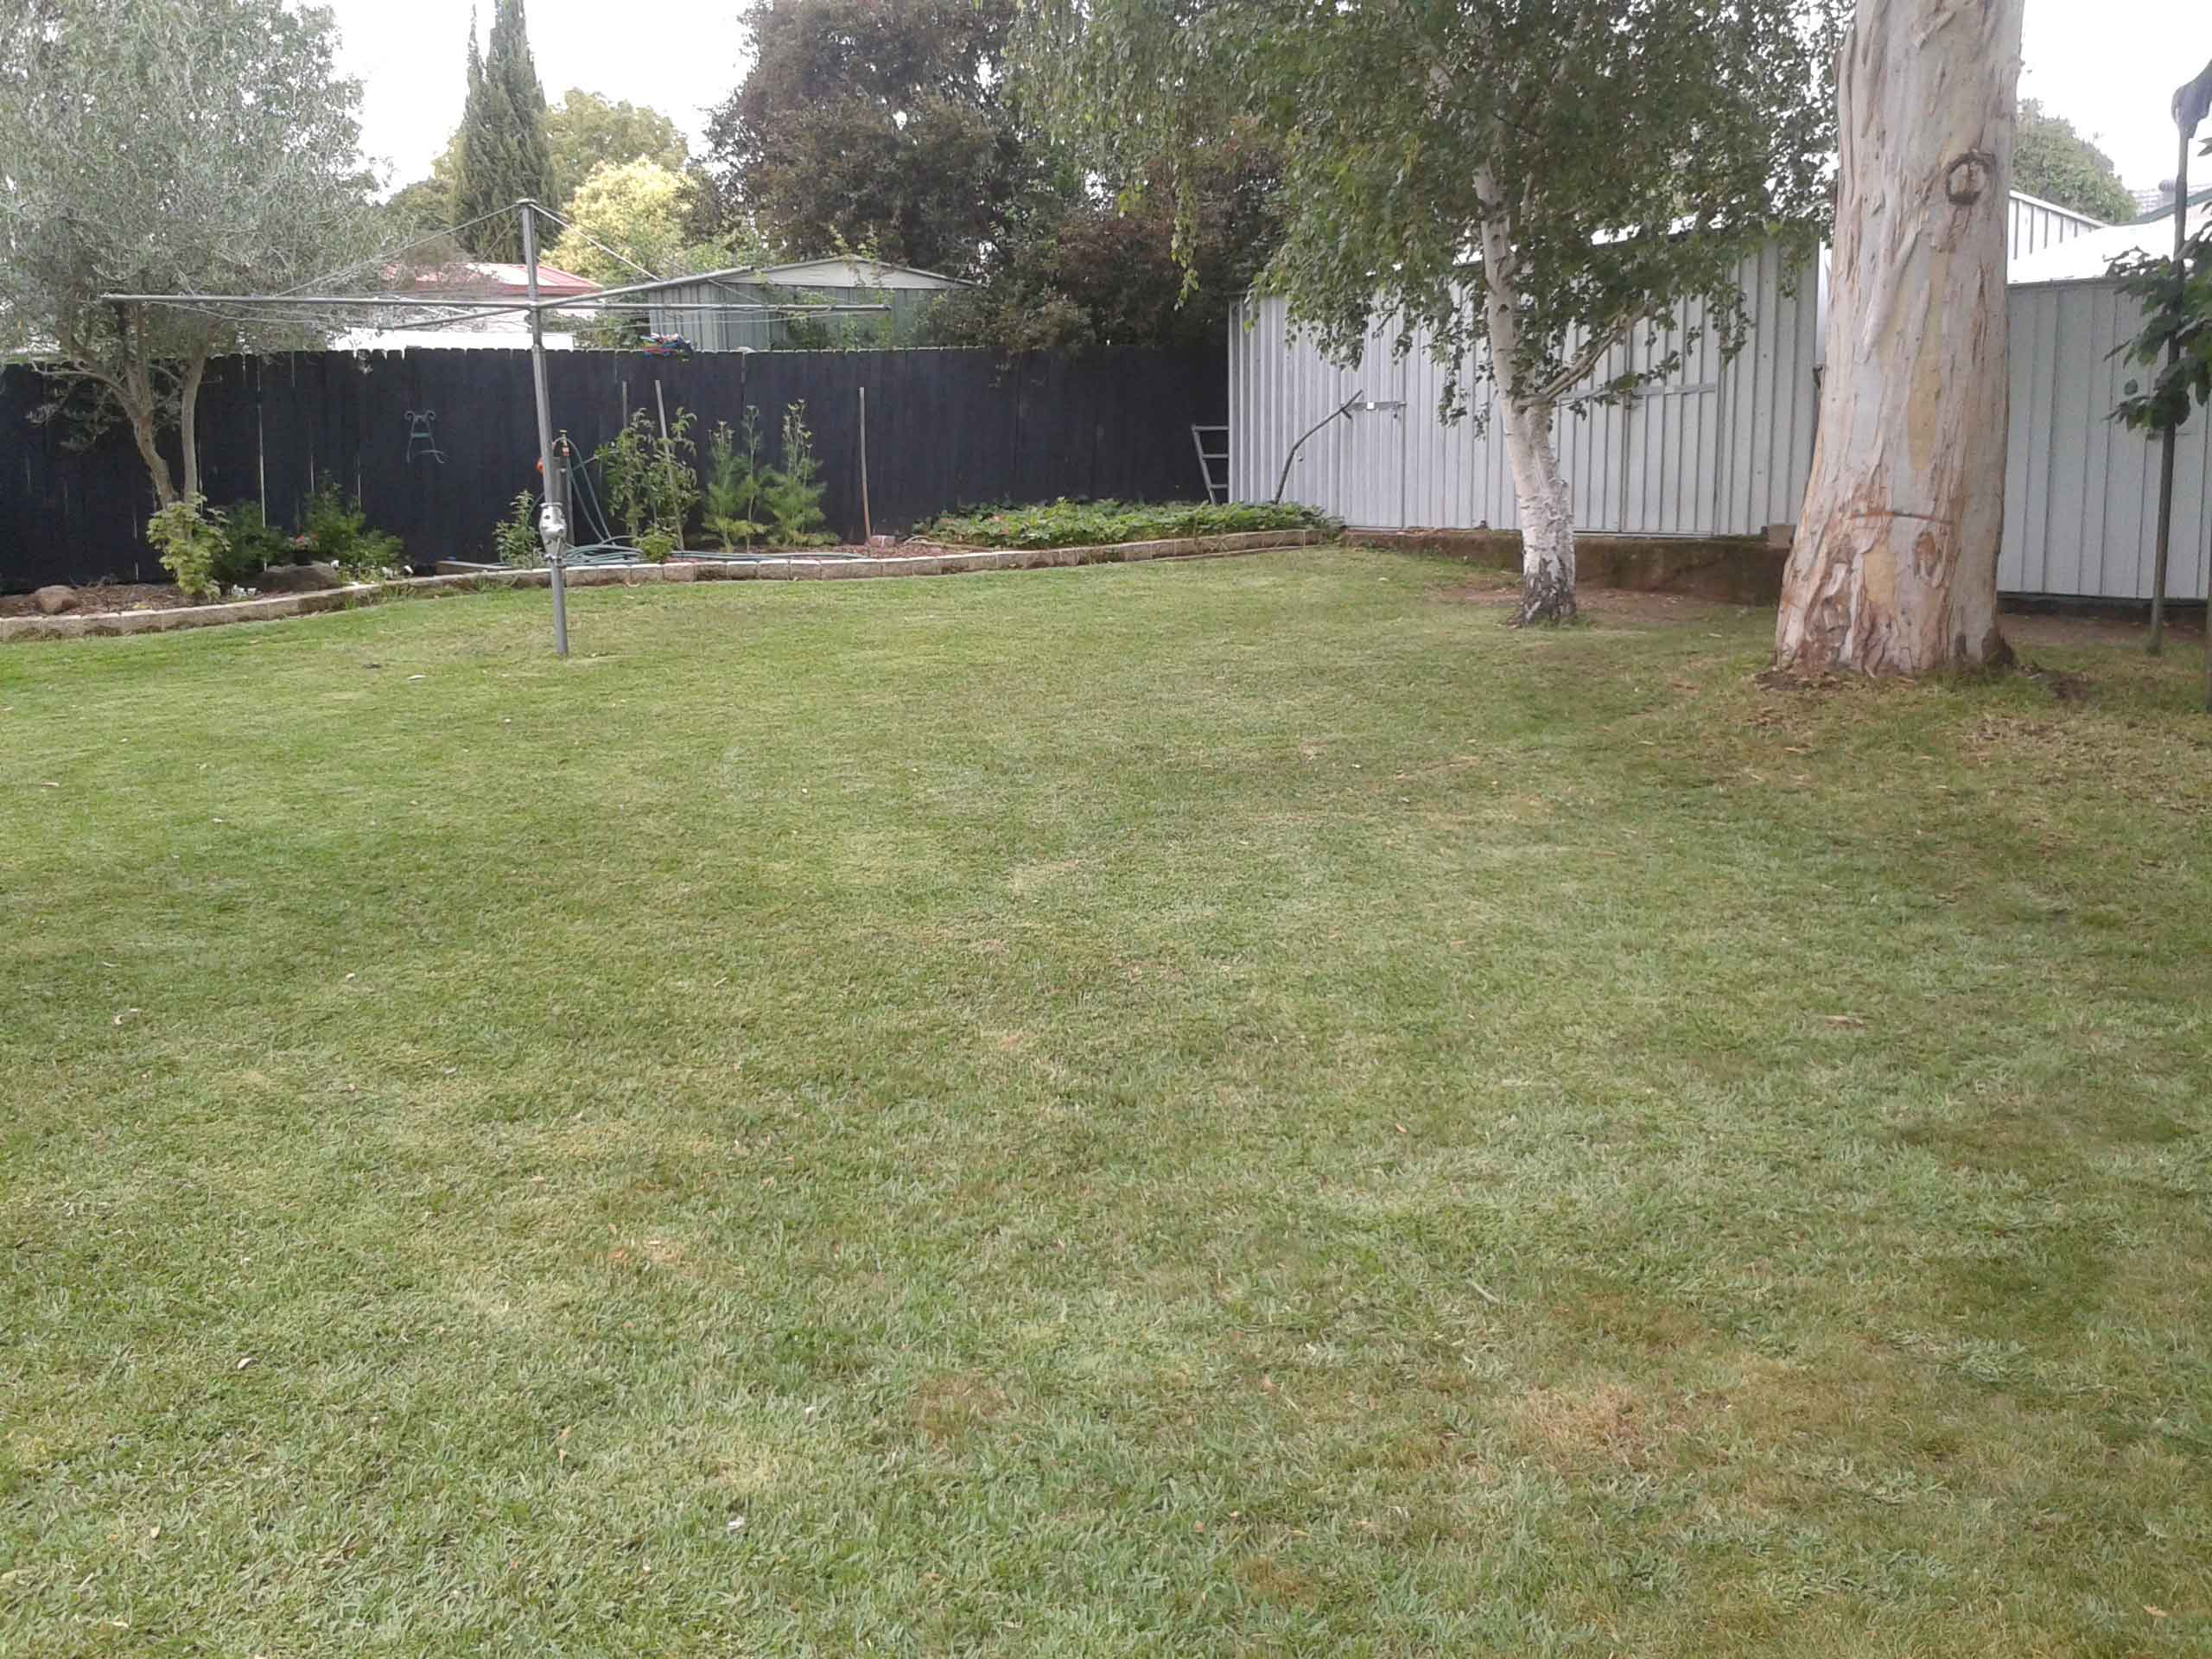 Lawn mowing and garden services free quote 0411 538 048 for Lawn and garden services